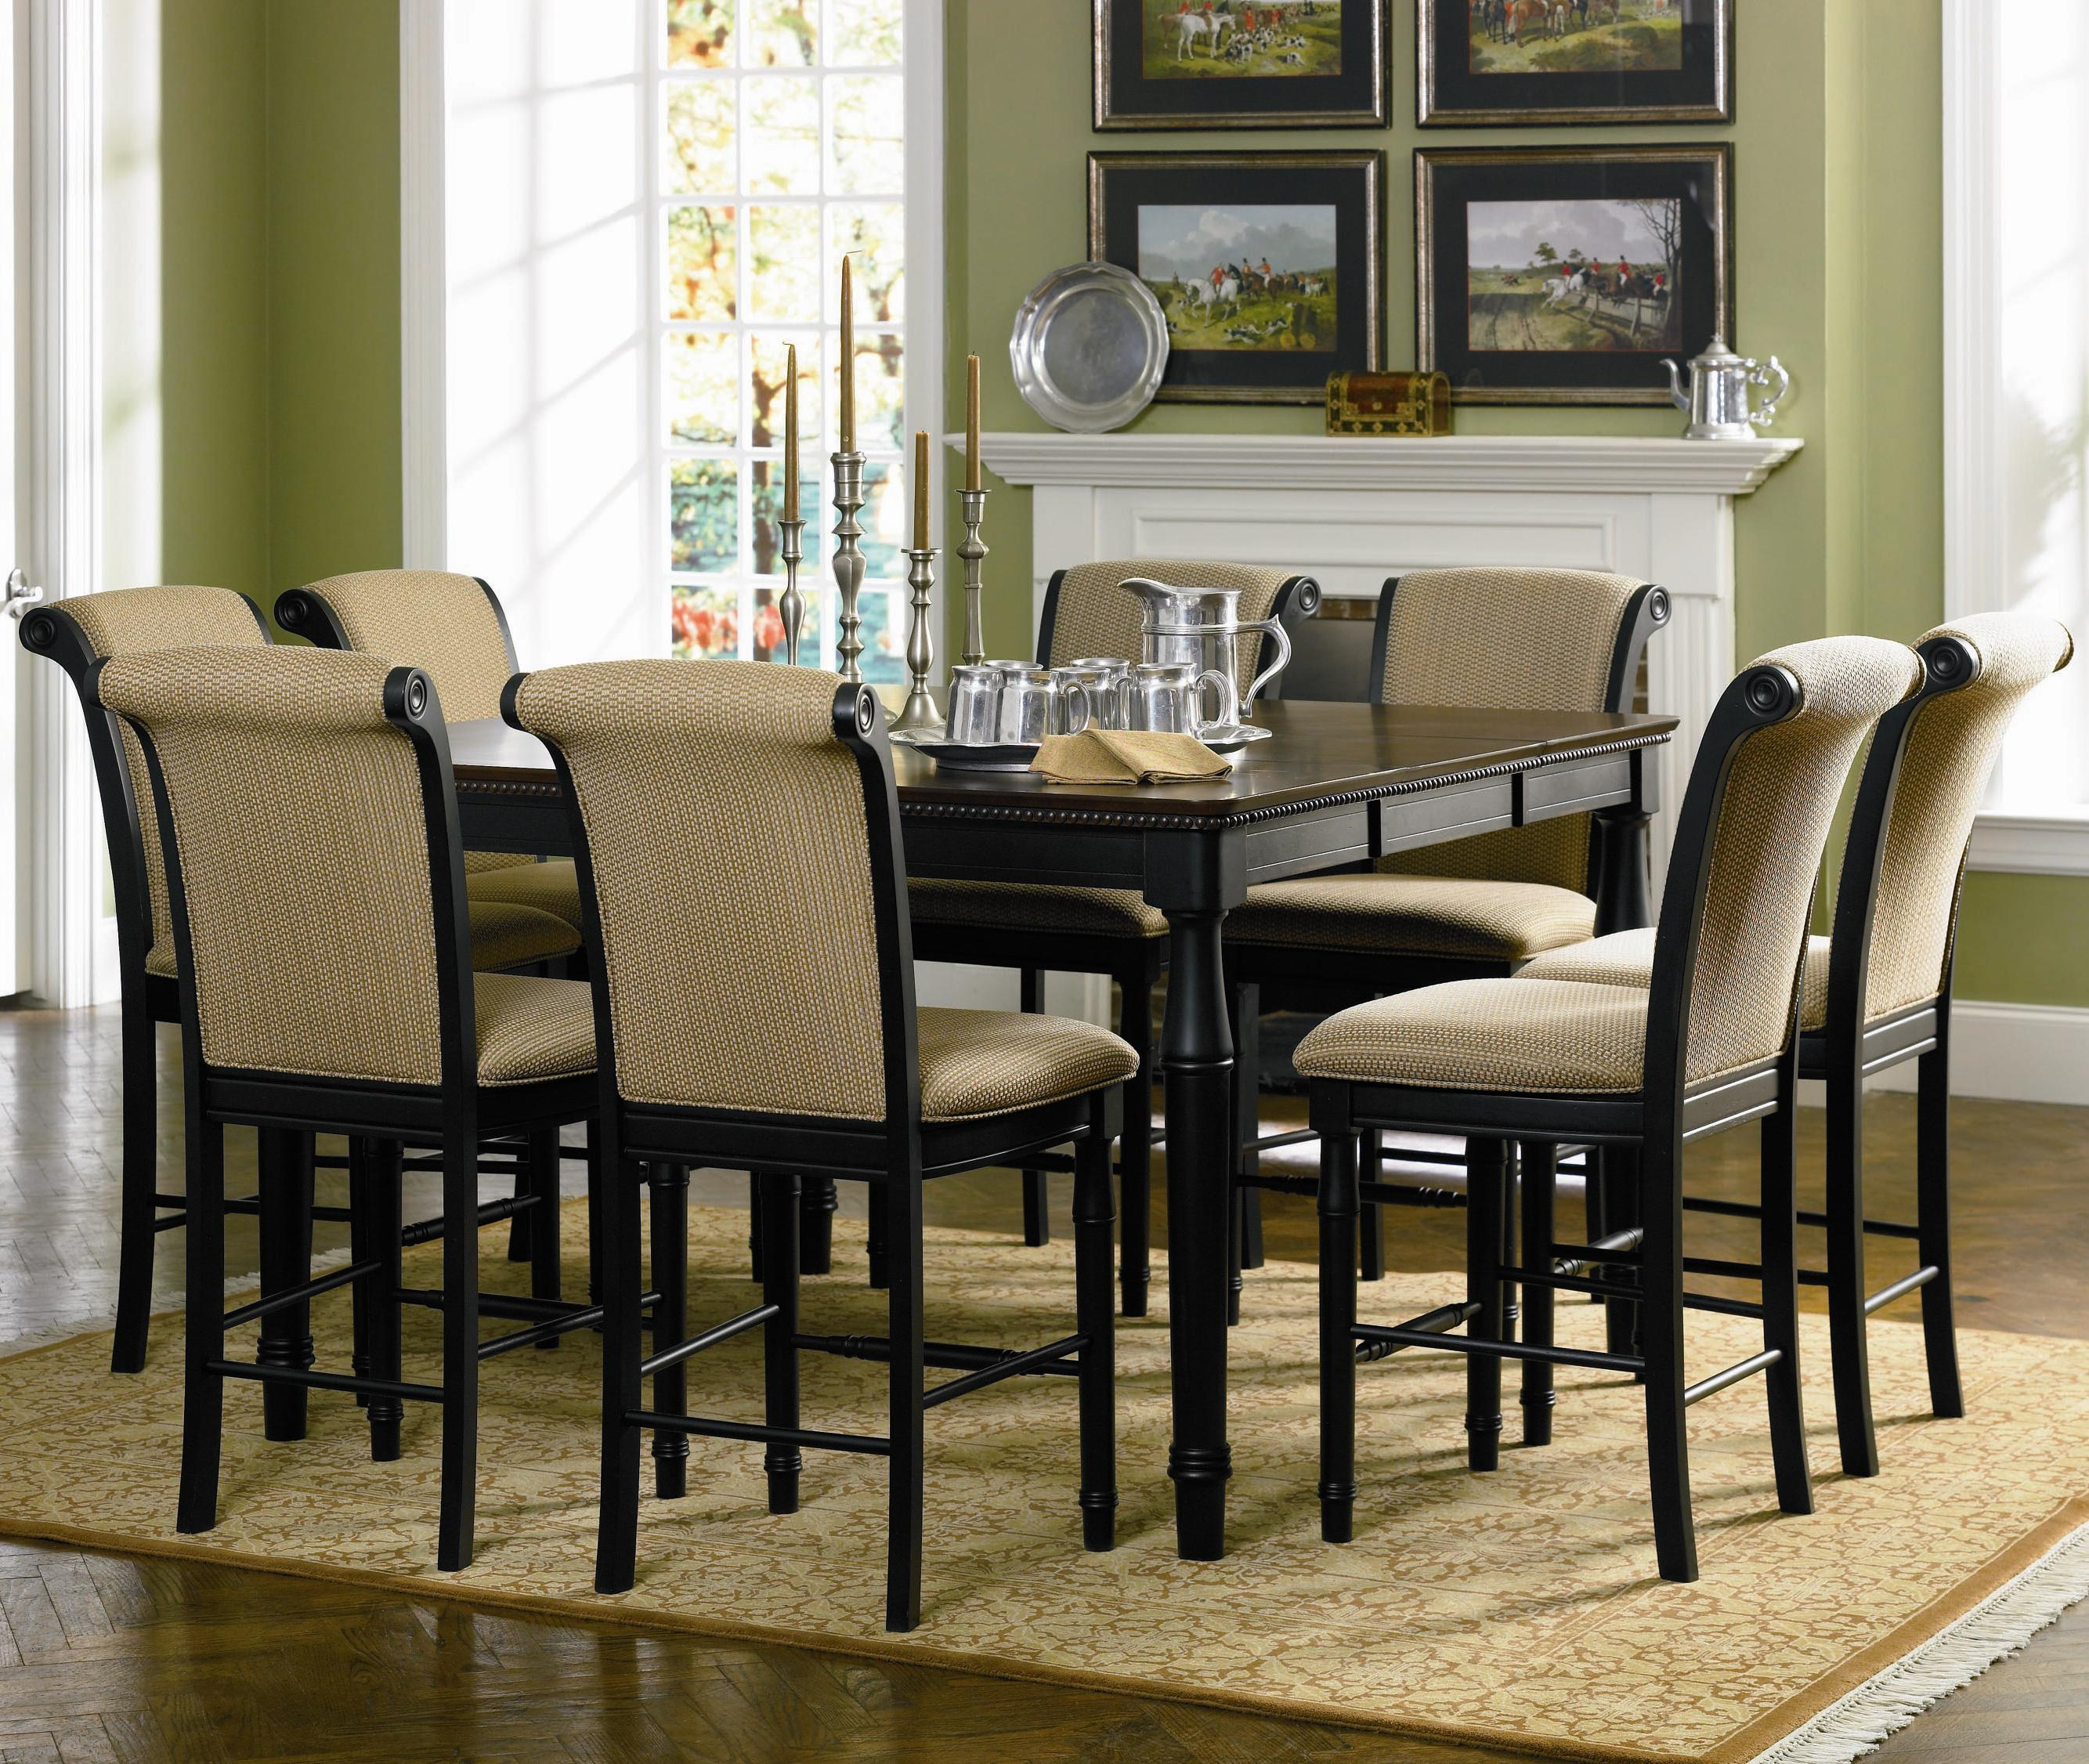 High Top Kitchen Table Sets - HomesFeed